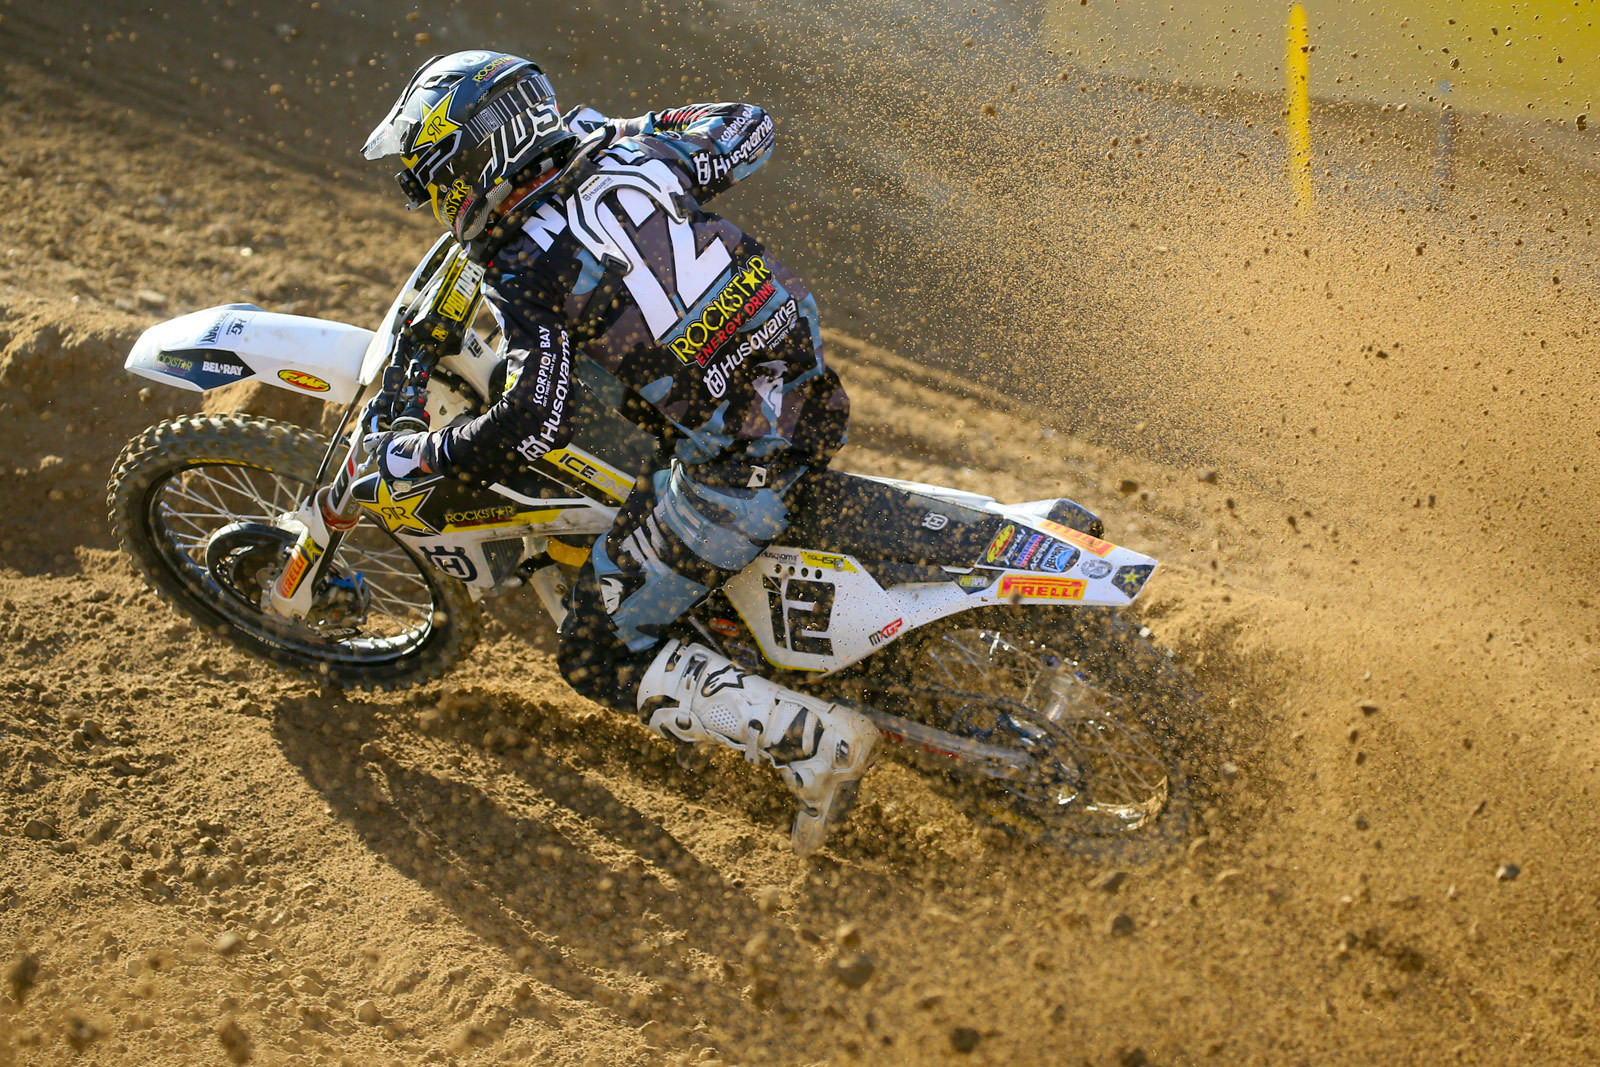 Max Nagl - Photo Blast: MXGP of the USA - Motocross Pictures - Vital MX